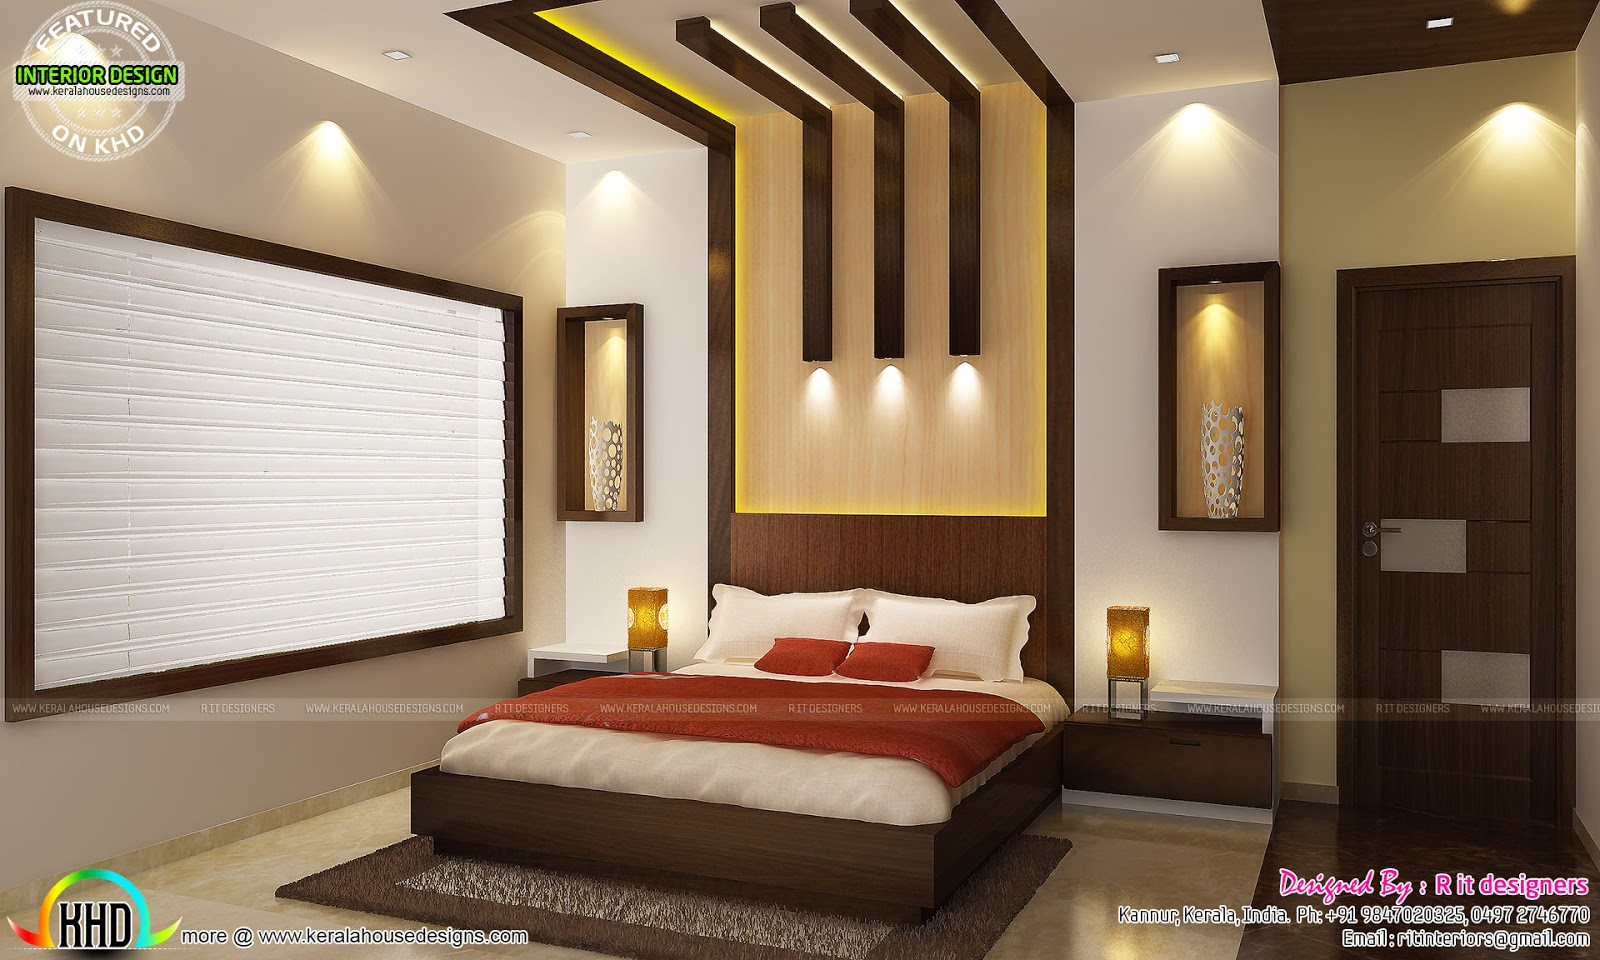 Kitchen living bedroom dining interior decor kerala for Interior design receiving room